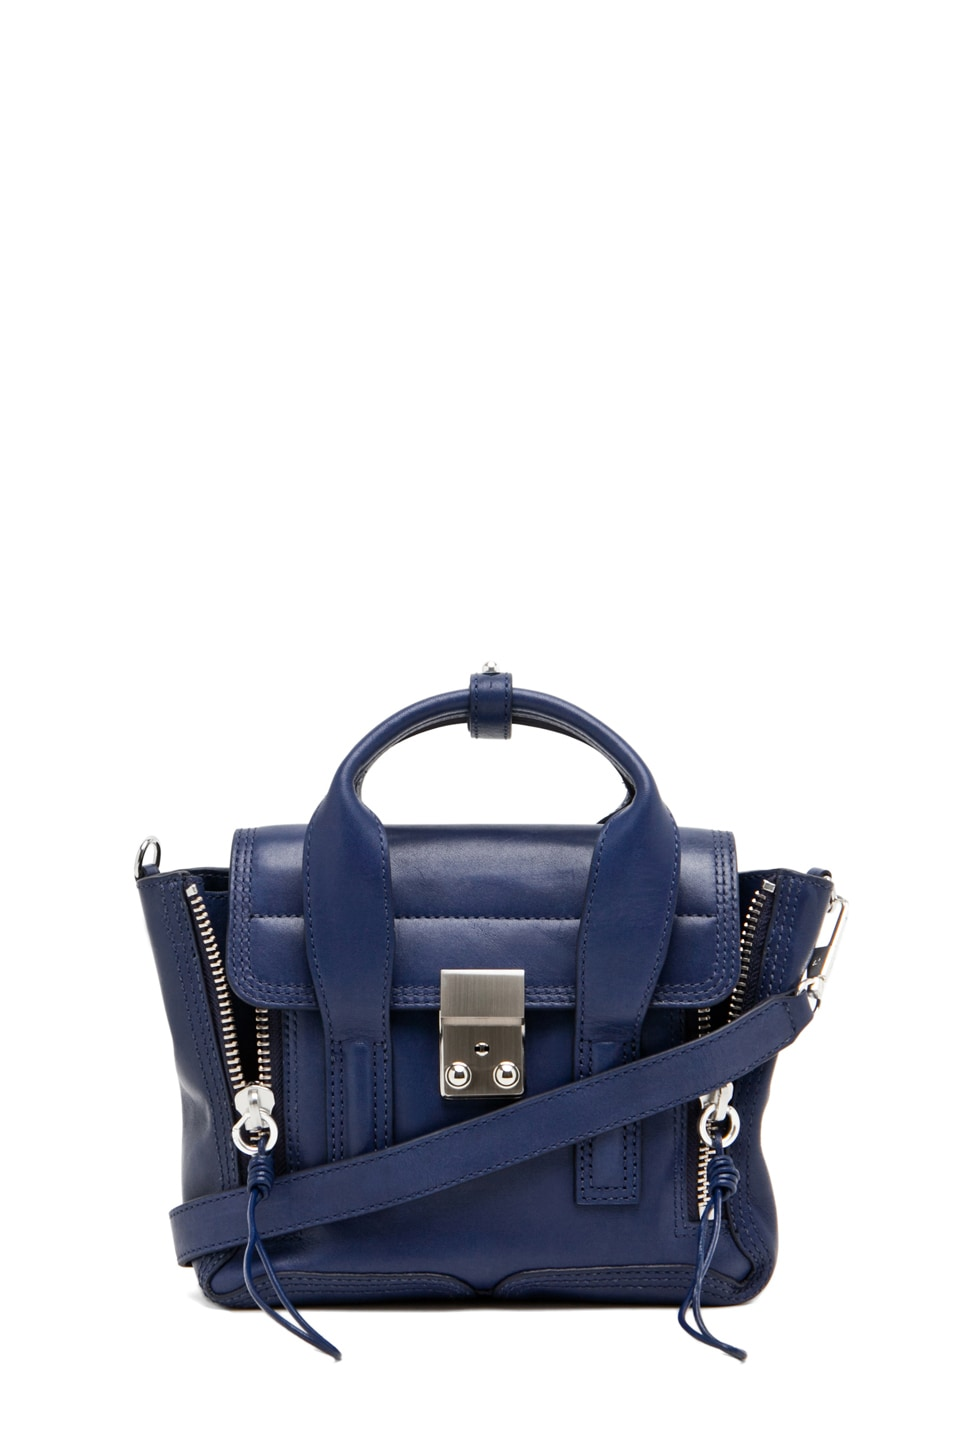 Image 1 of 3.1 phillip lim Pashli Mini Satchel in Navy